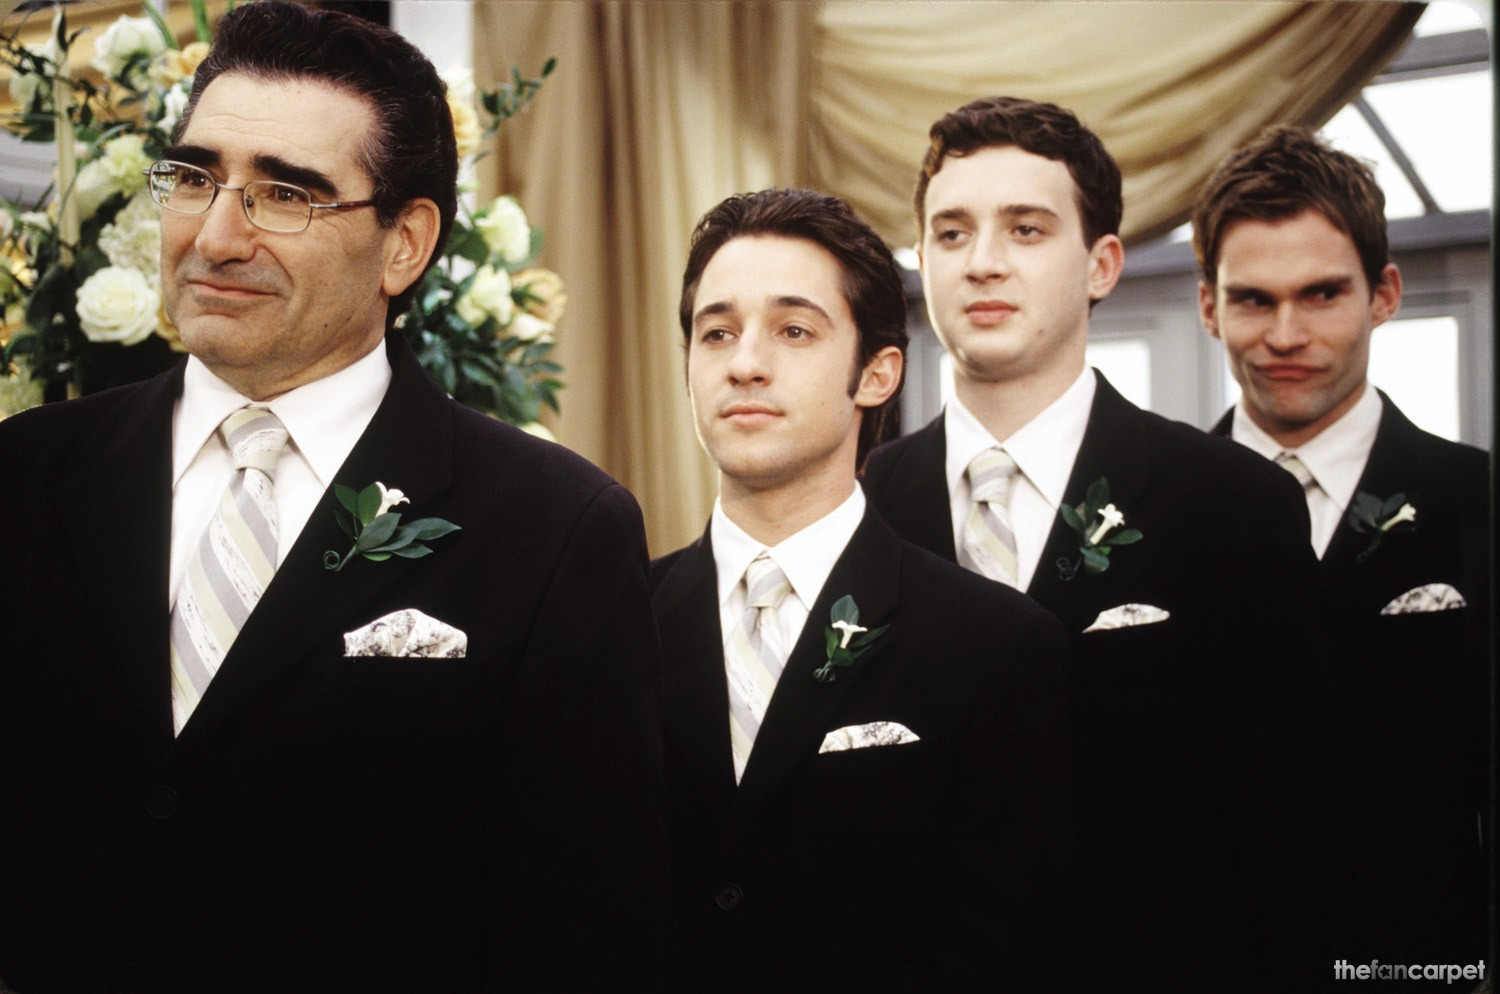 Eddie Kaye Thomas,Eugene Levy,Seann William Scott,Thomas Ian Nicholas